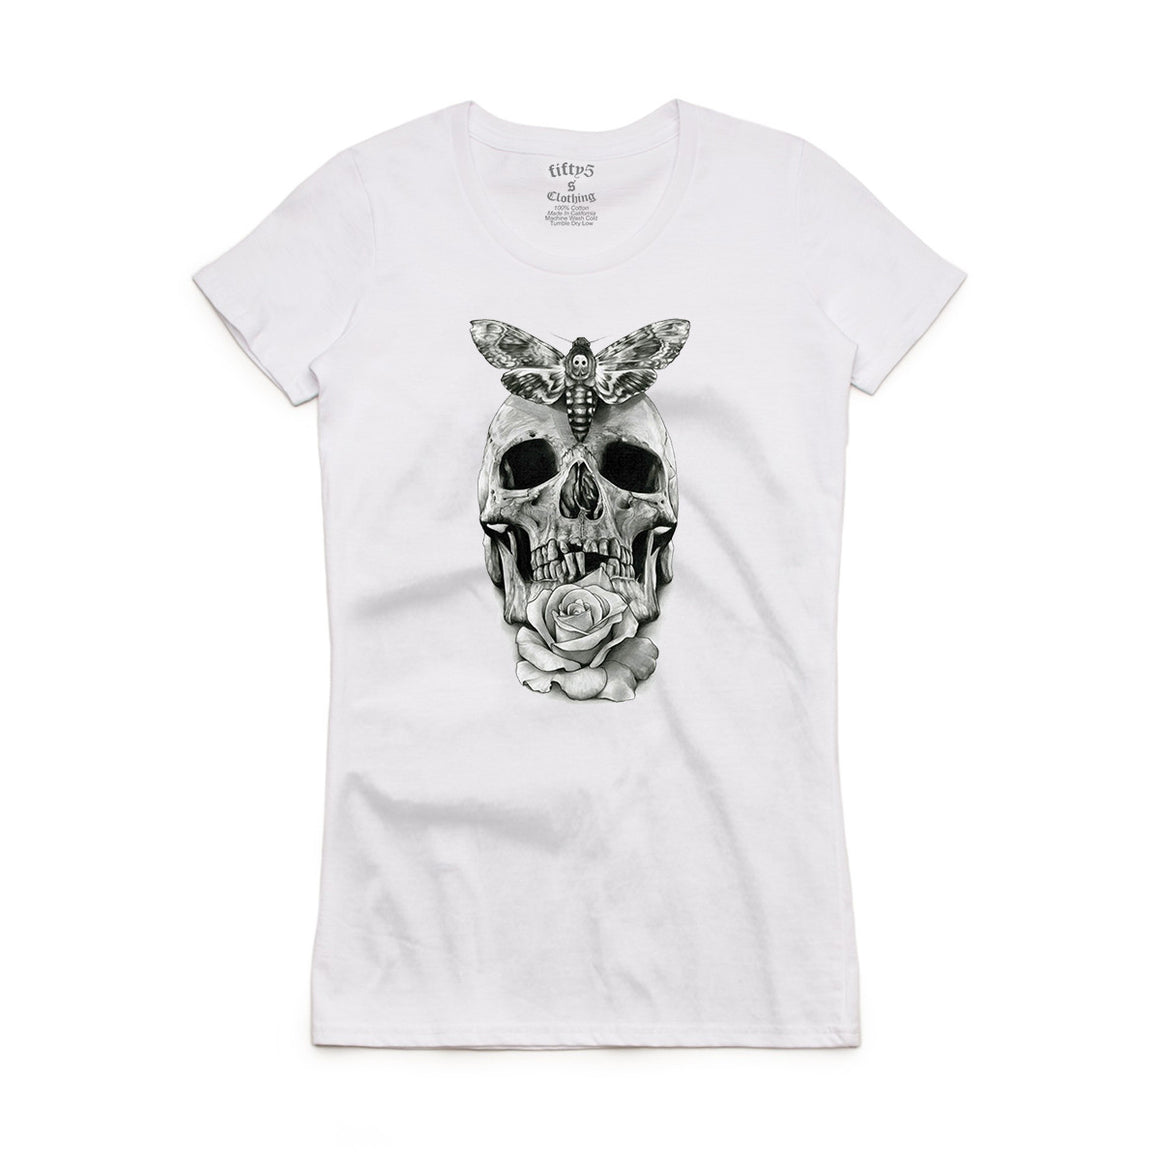 Fifty5 Clothing Moth Skull Women's Crew Neck T-Shirt